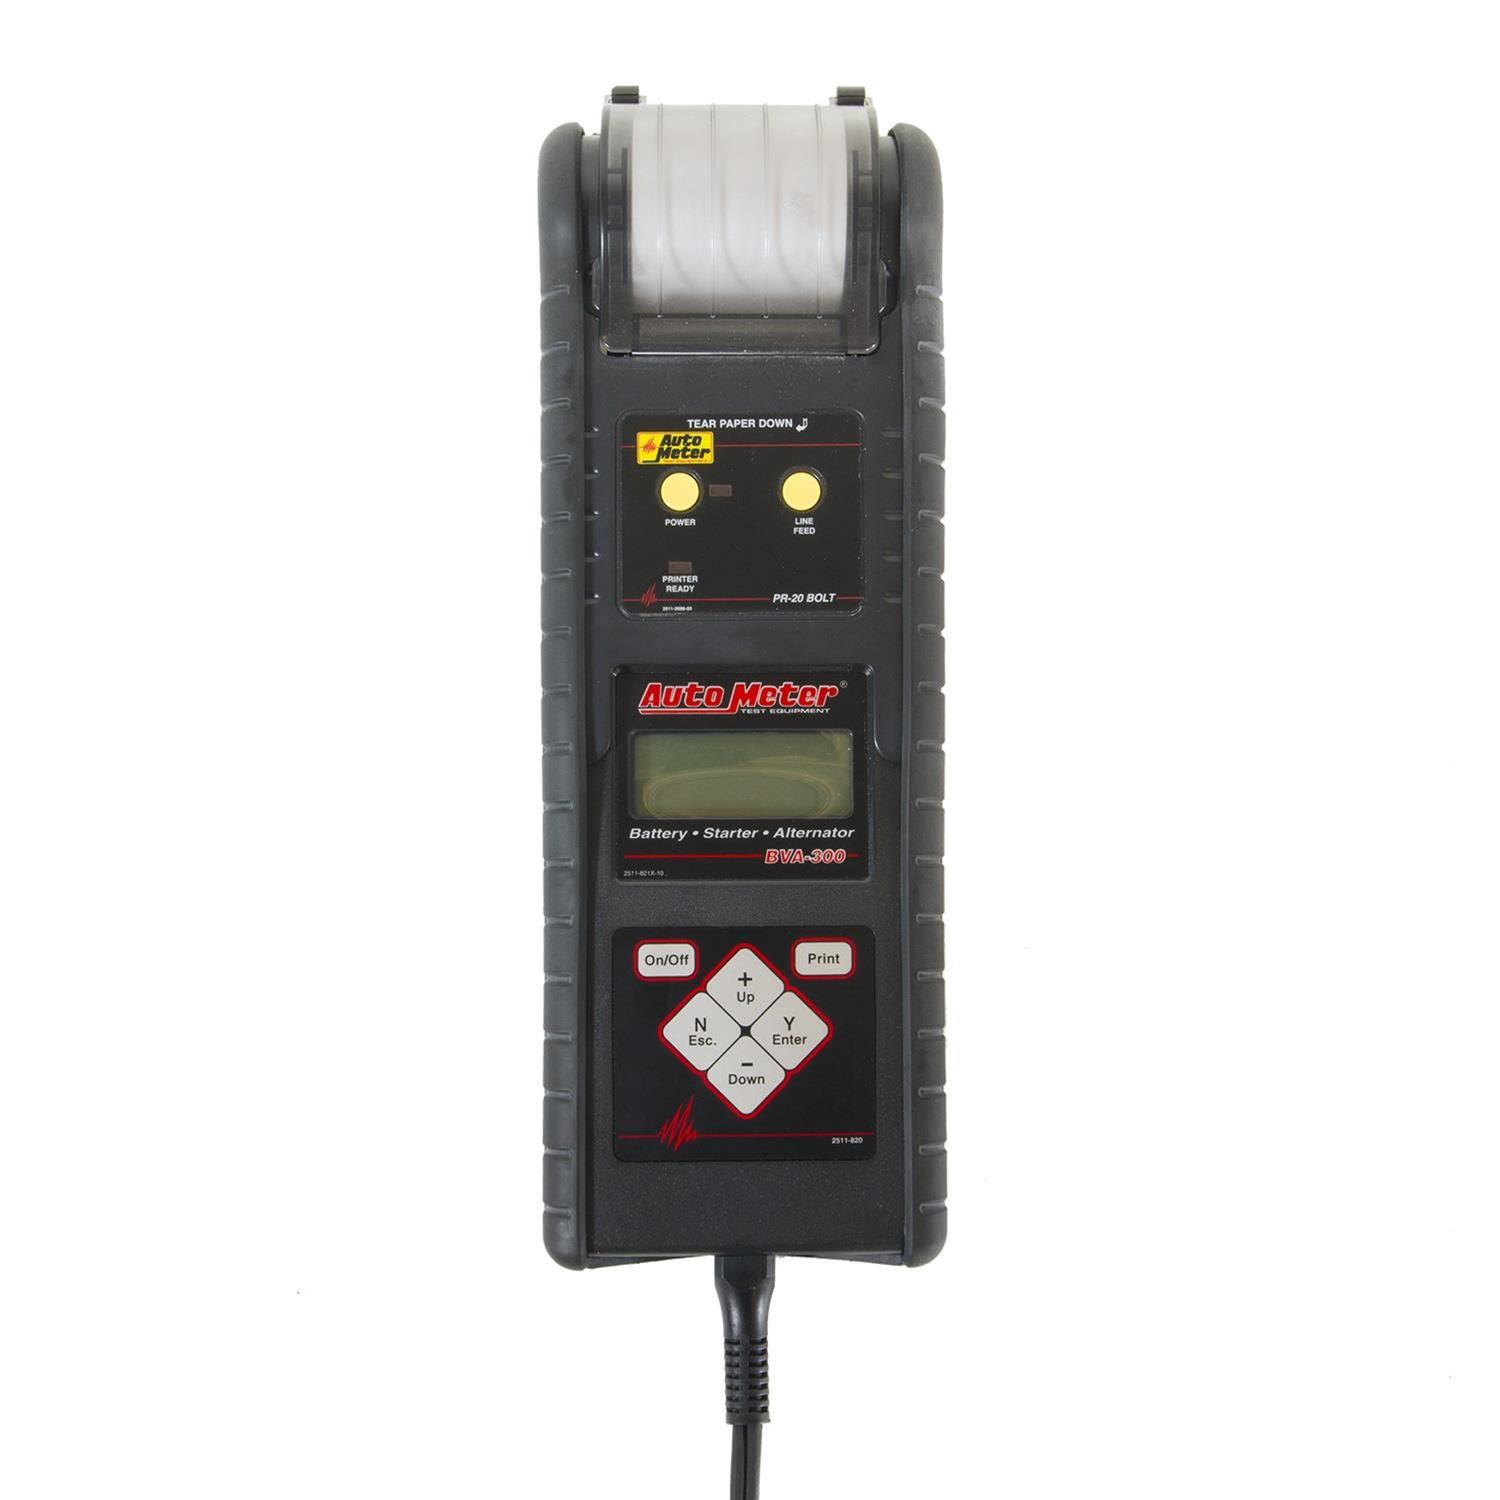 Hand Held Battery Tester : Autometer intelligent hand held battery and system tester